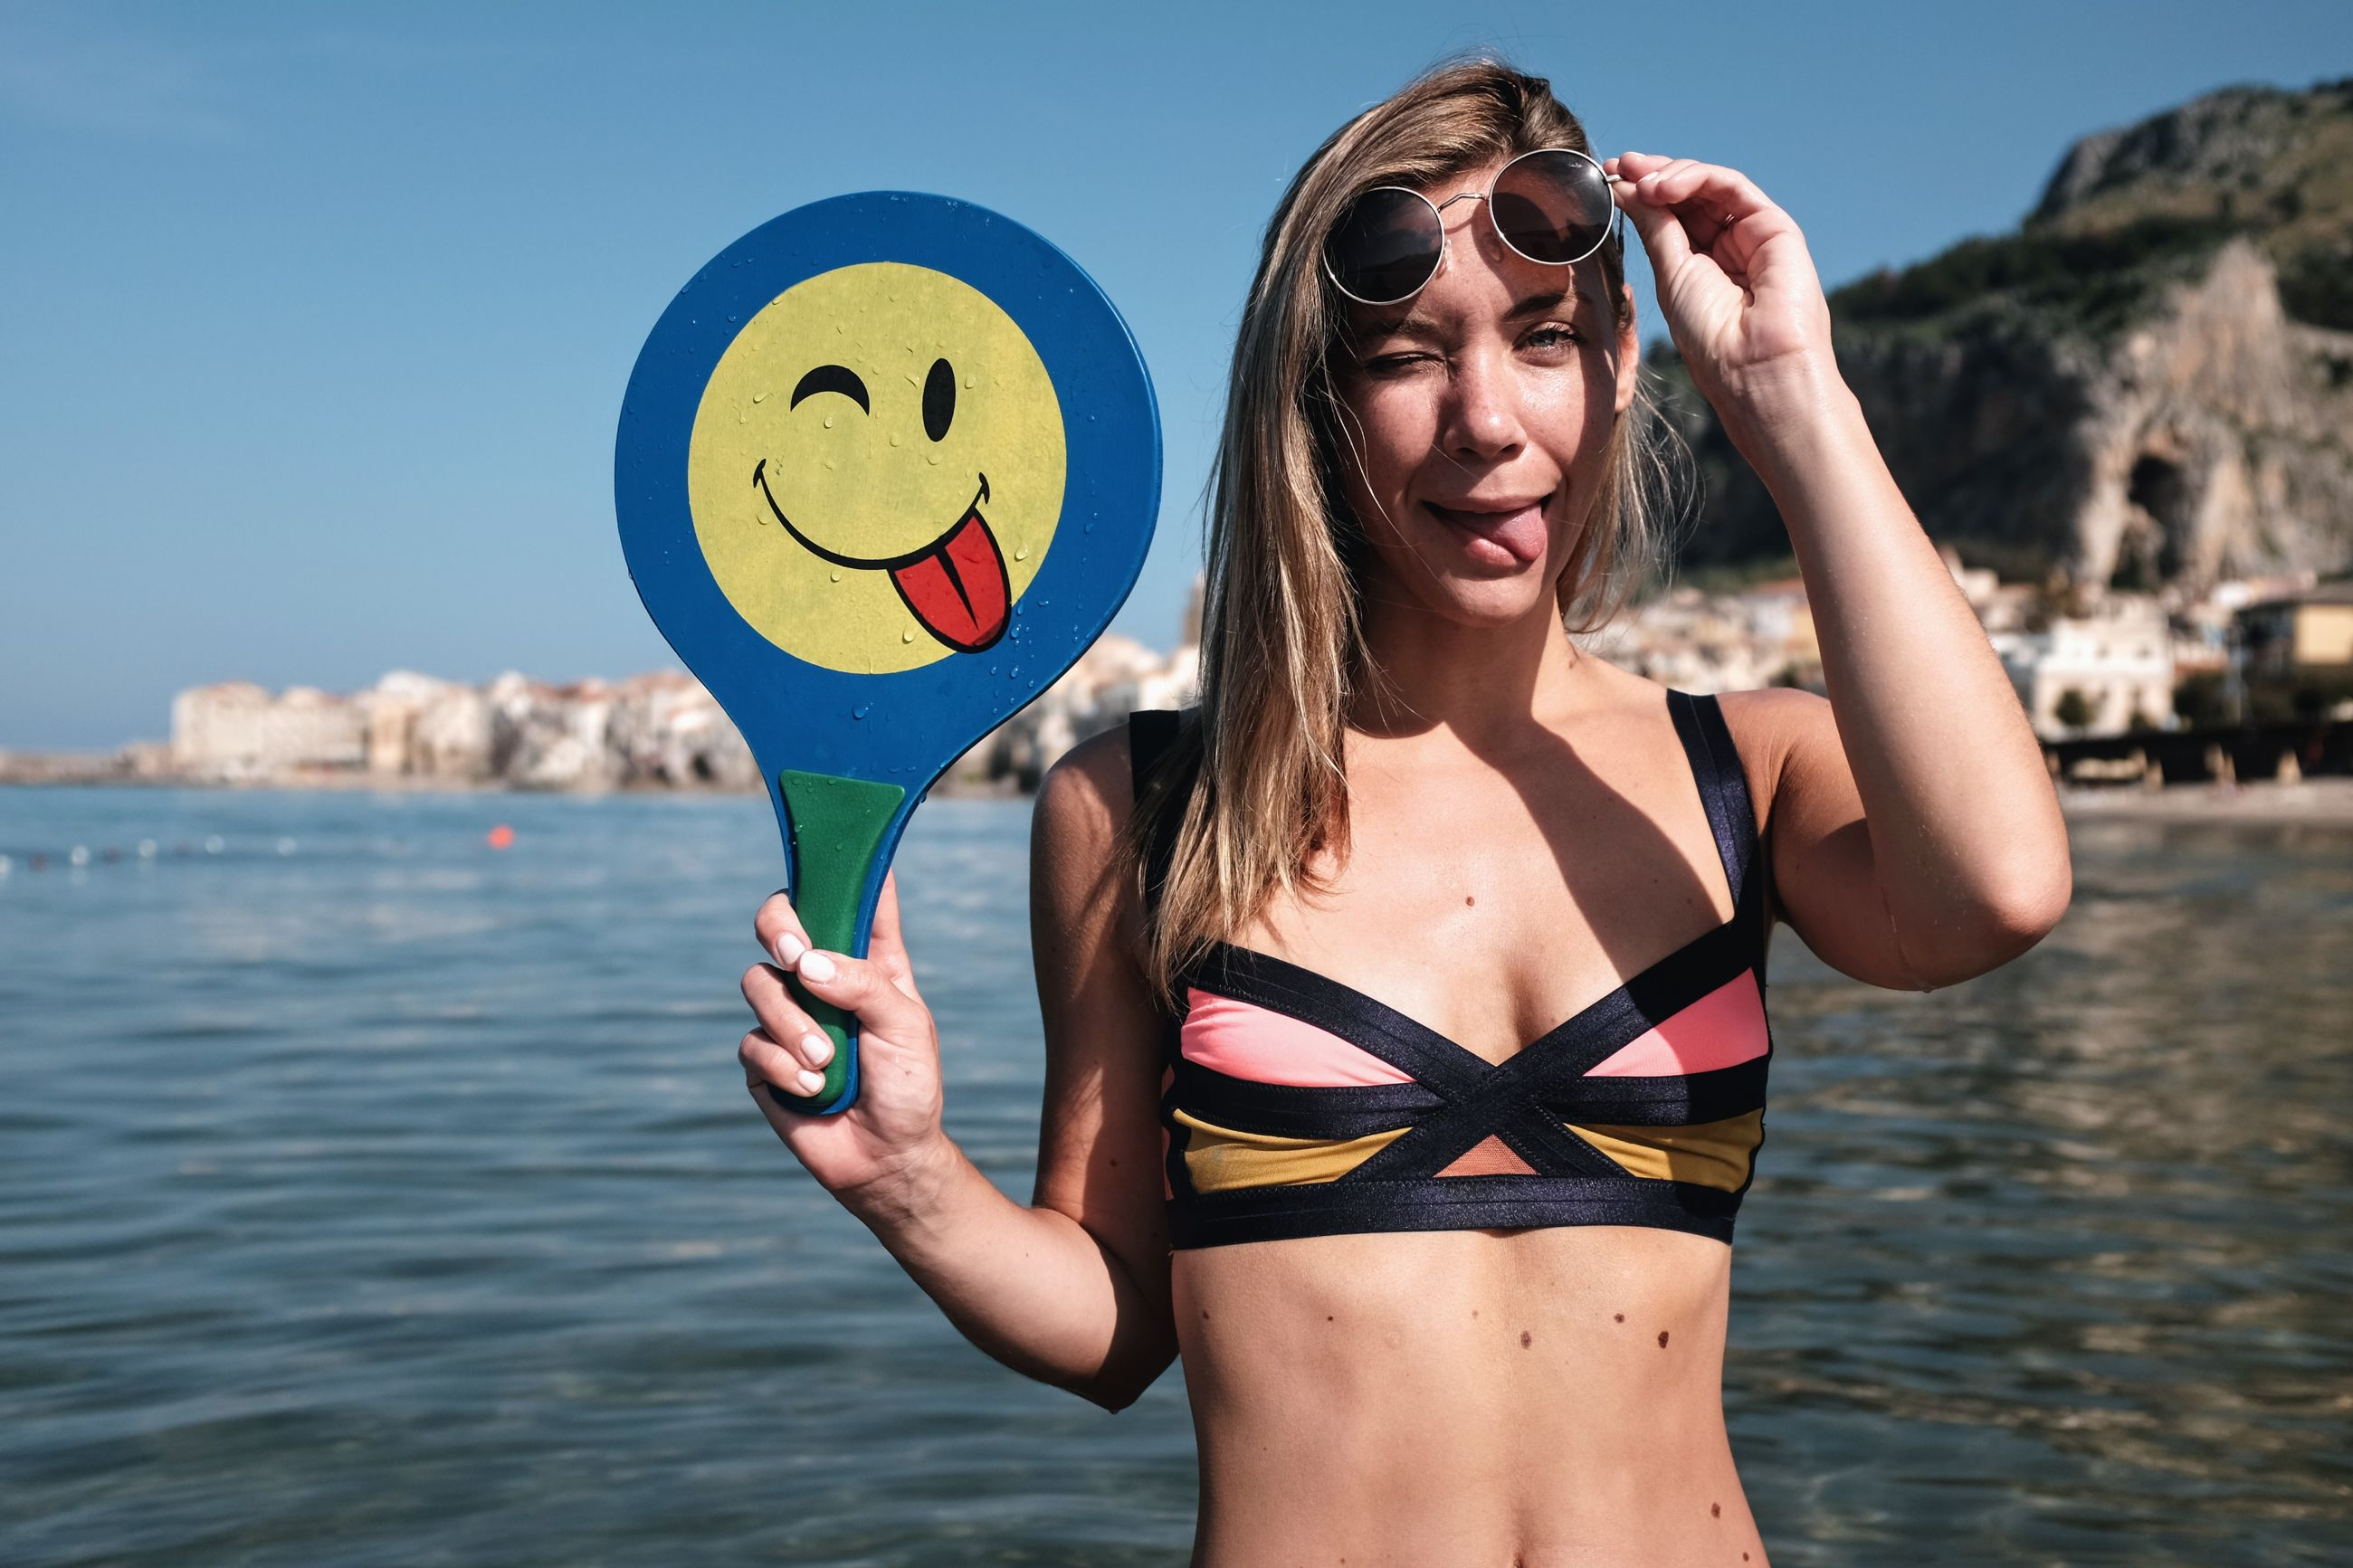 Portrait of young woman wearing bikini sticking out tongue in sea